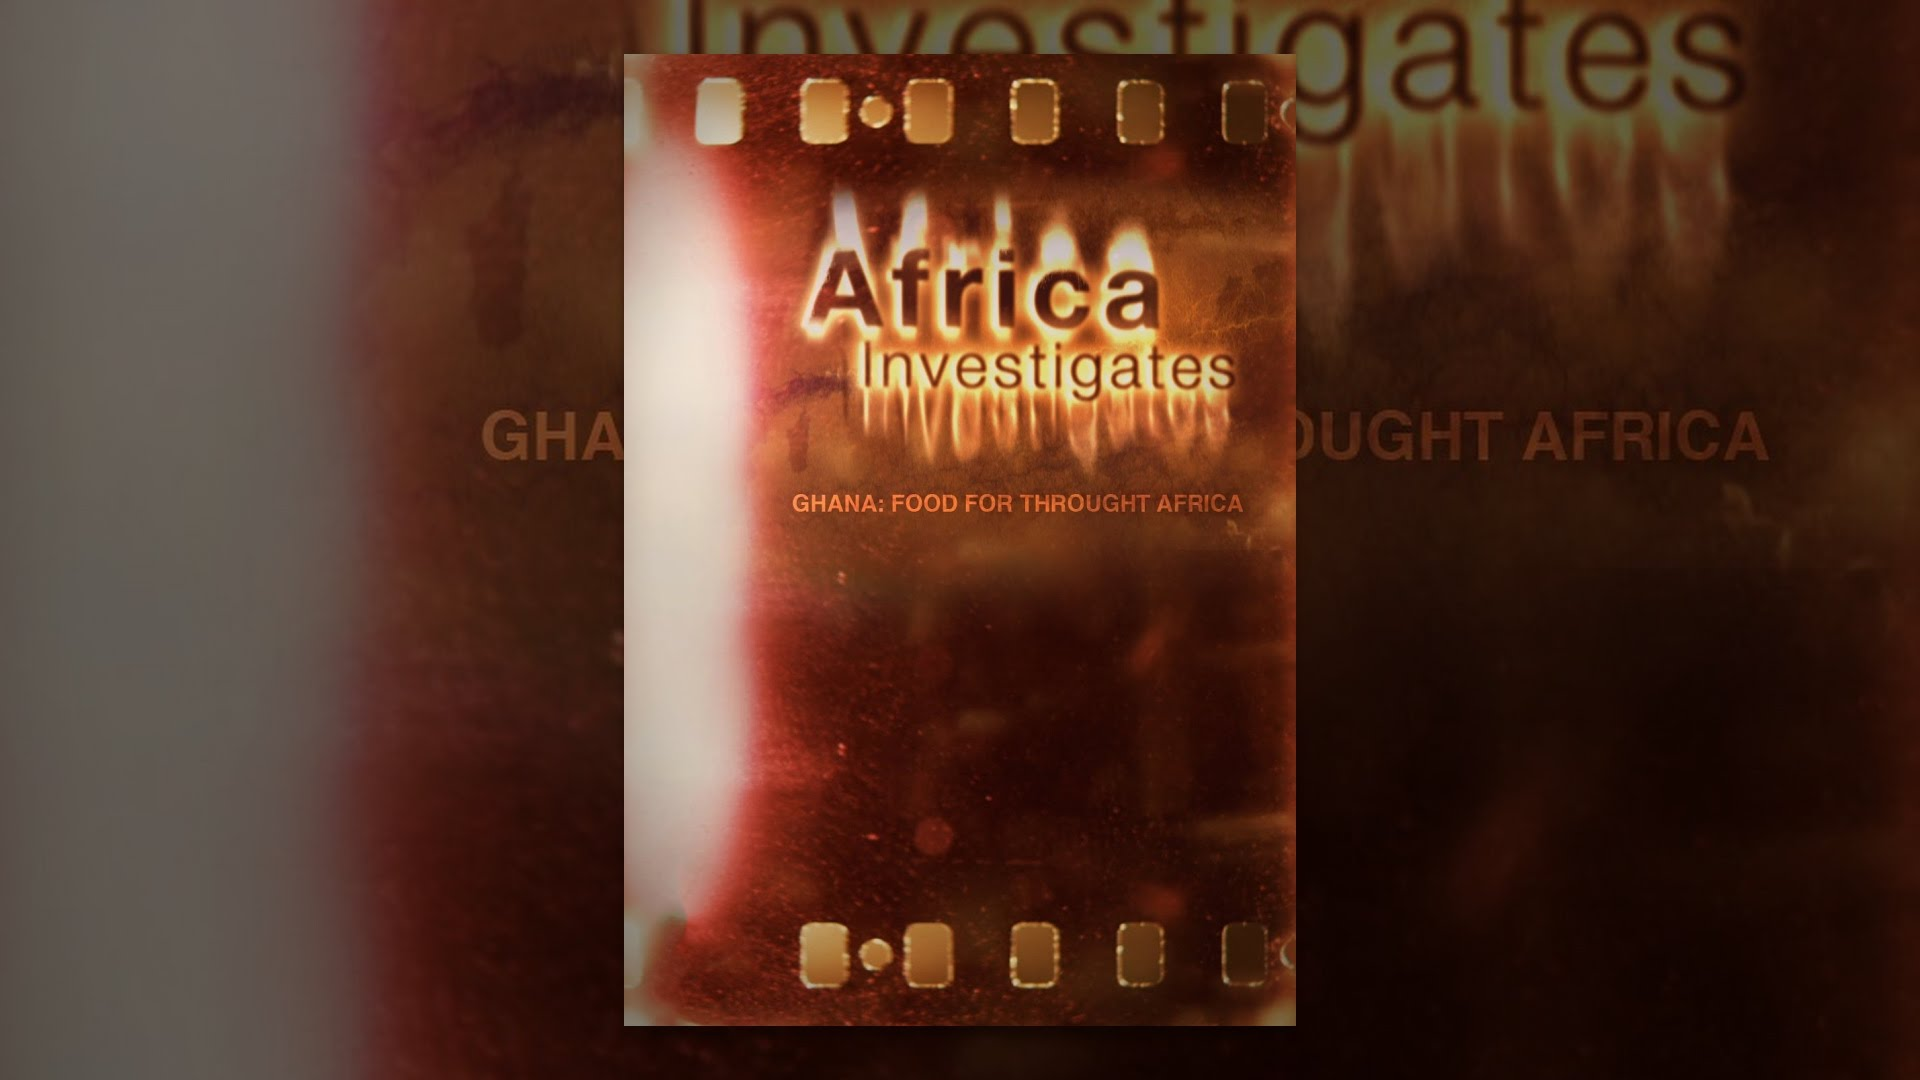 Africa Investigates – Ghana: Food for thought Africa